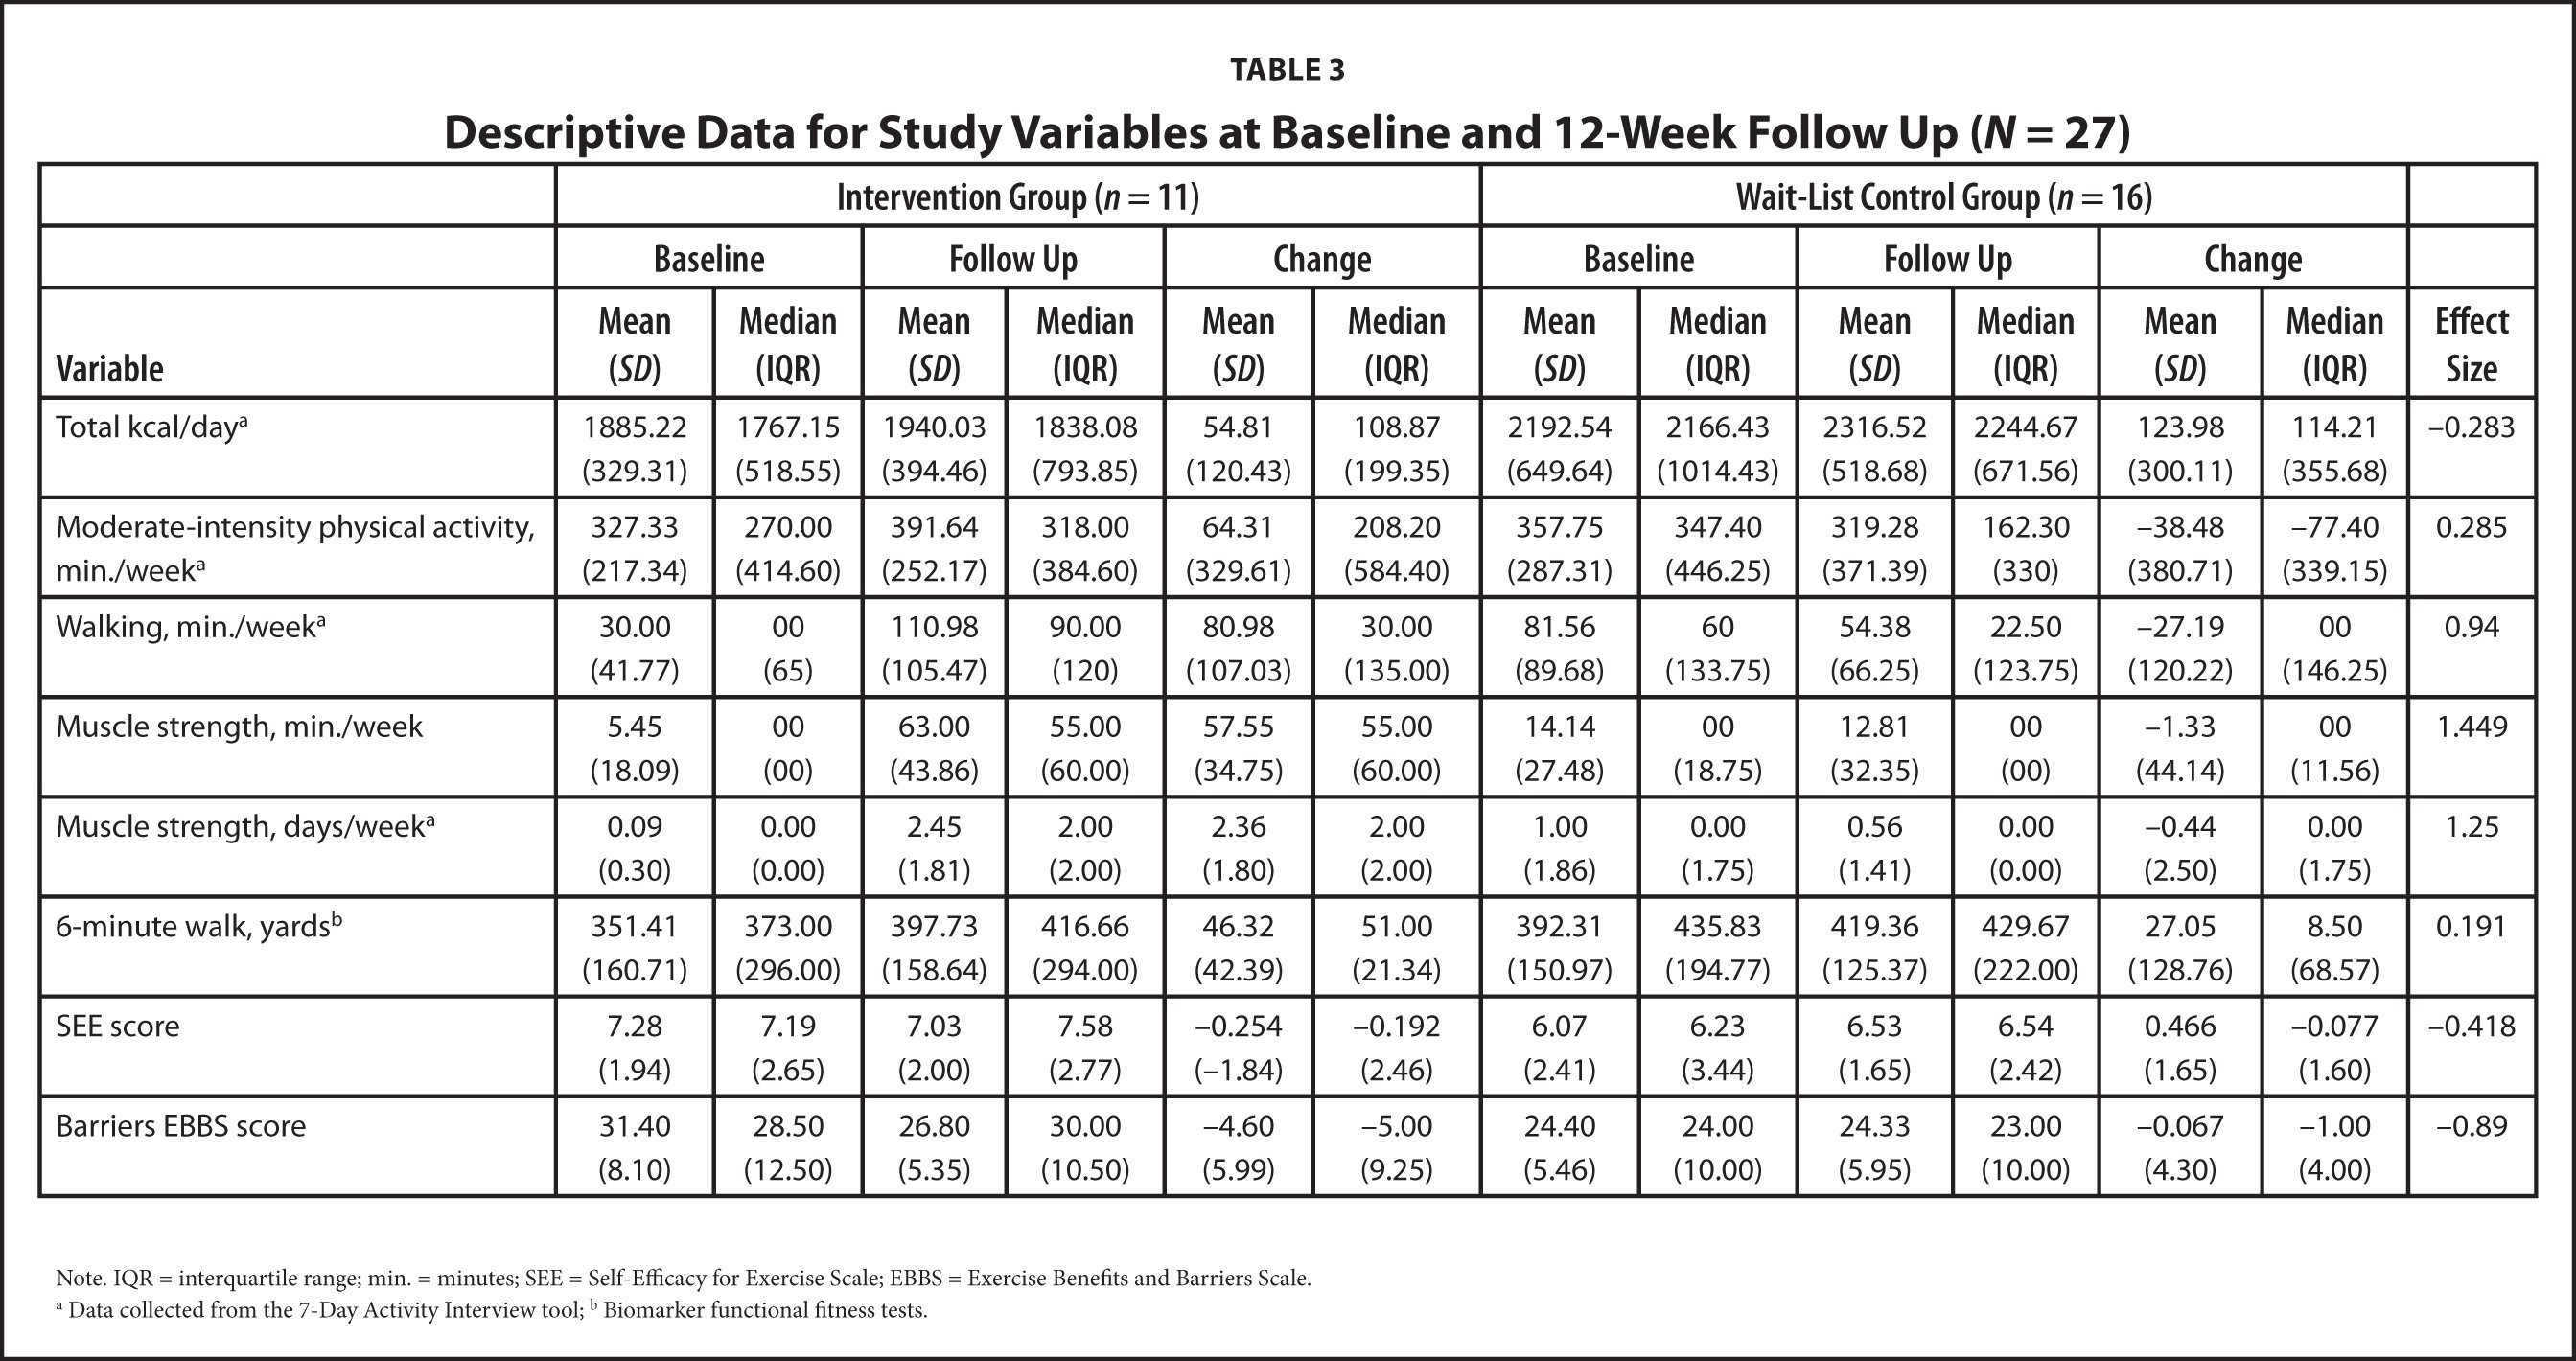 Descriptive Data for Study Variables at Baseline and 12-Week Follow Up (N = 27)